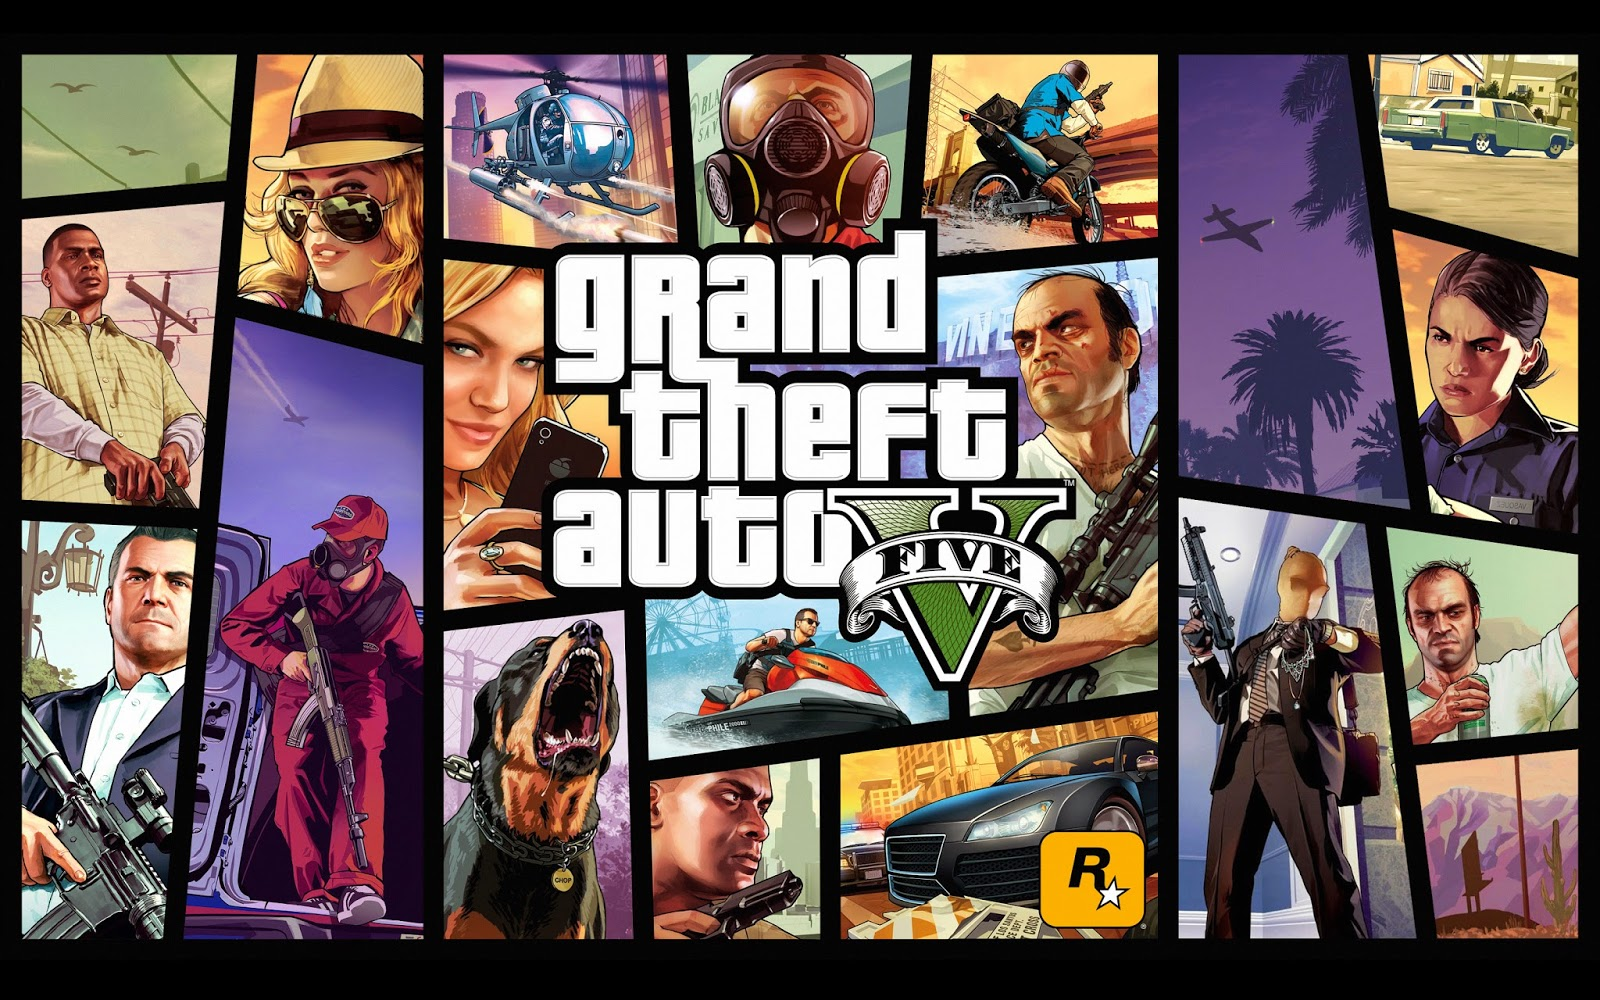 (GTA V) Grand Theft Auto 5 FULL DOWNLOAD + Crack TORRENT